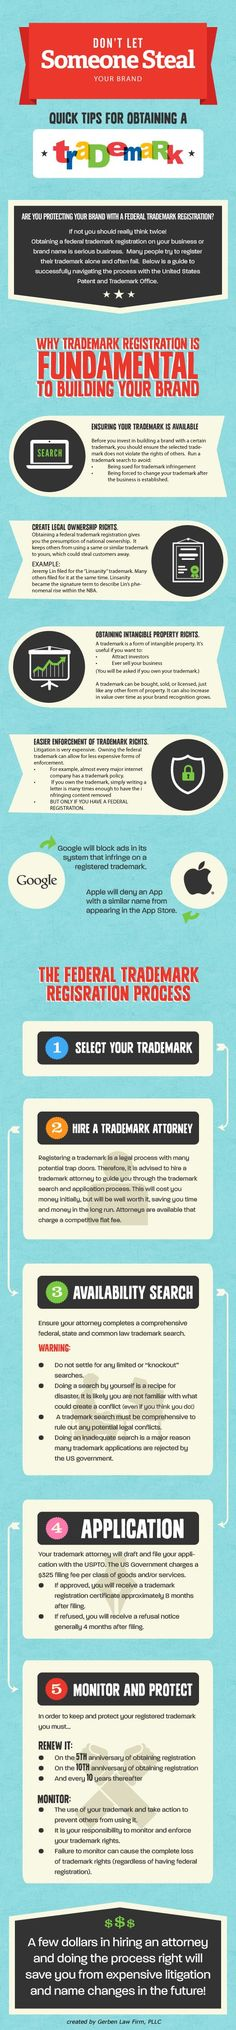 Don't Let Someone Steal Your Brand! Quick Tips for Obtaining a Trademark #Infographic [SmallBizTrends]